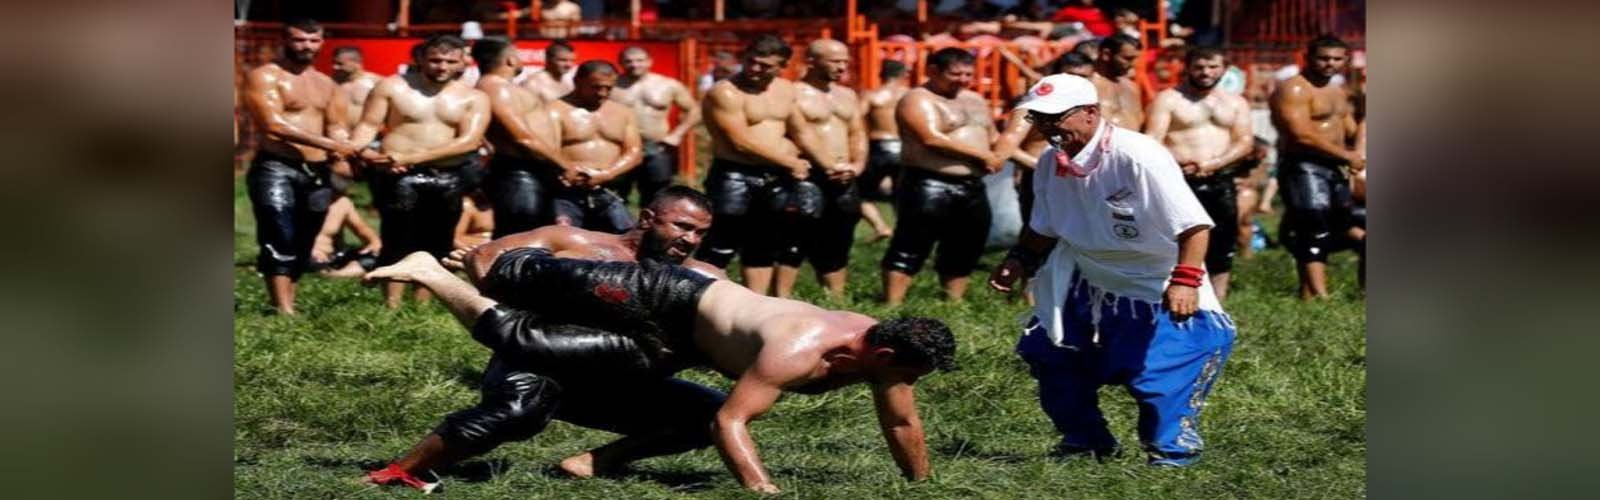 Turkish oil wrestlers grapple to win 600-year-old title